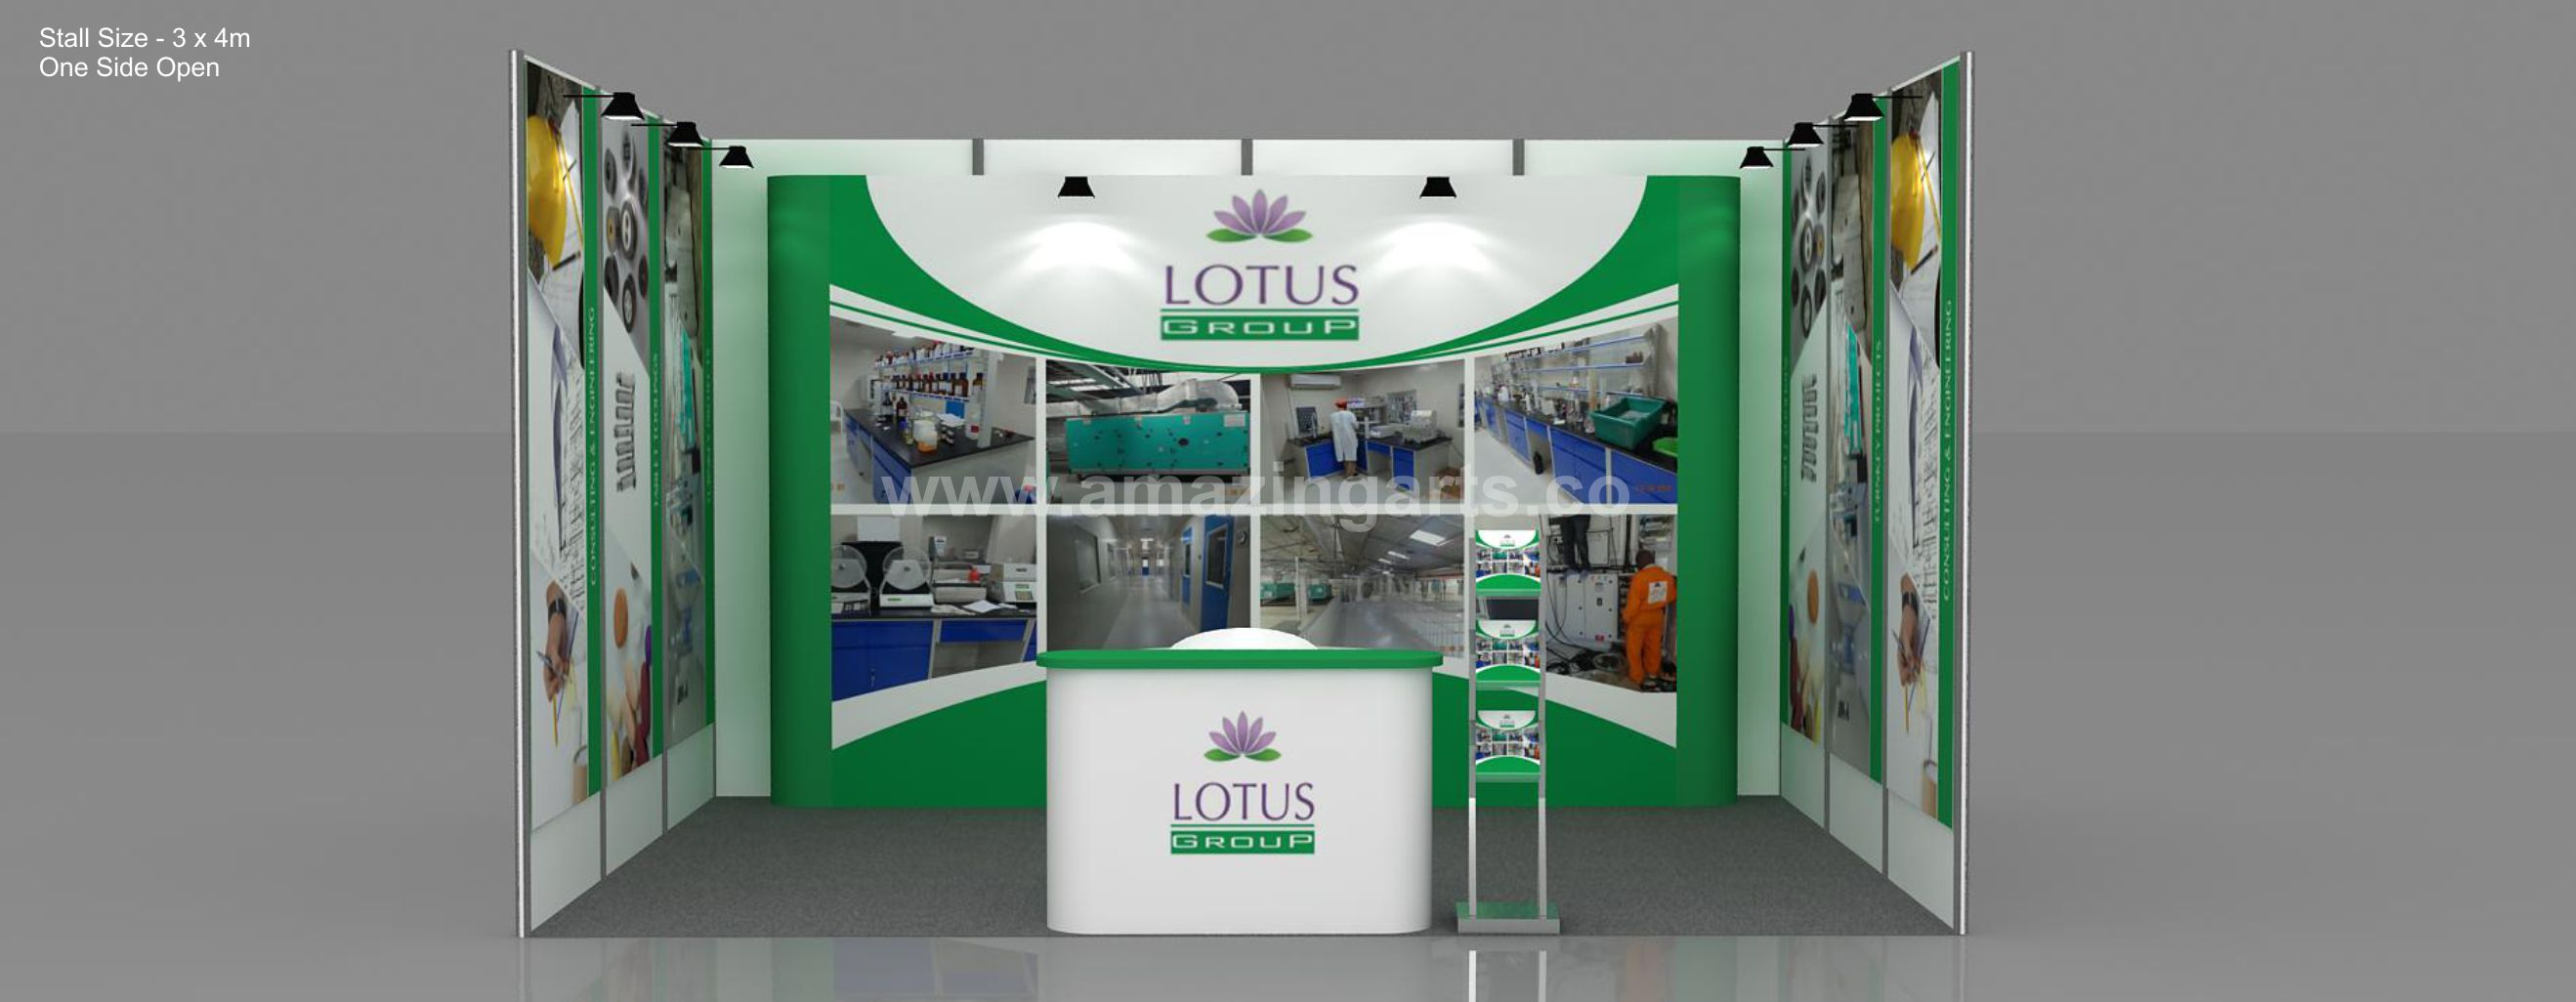 Portable Exhibition Kit Bangalore : Exhibition stall designer exhibition stall design company